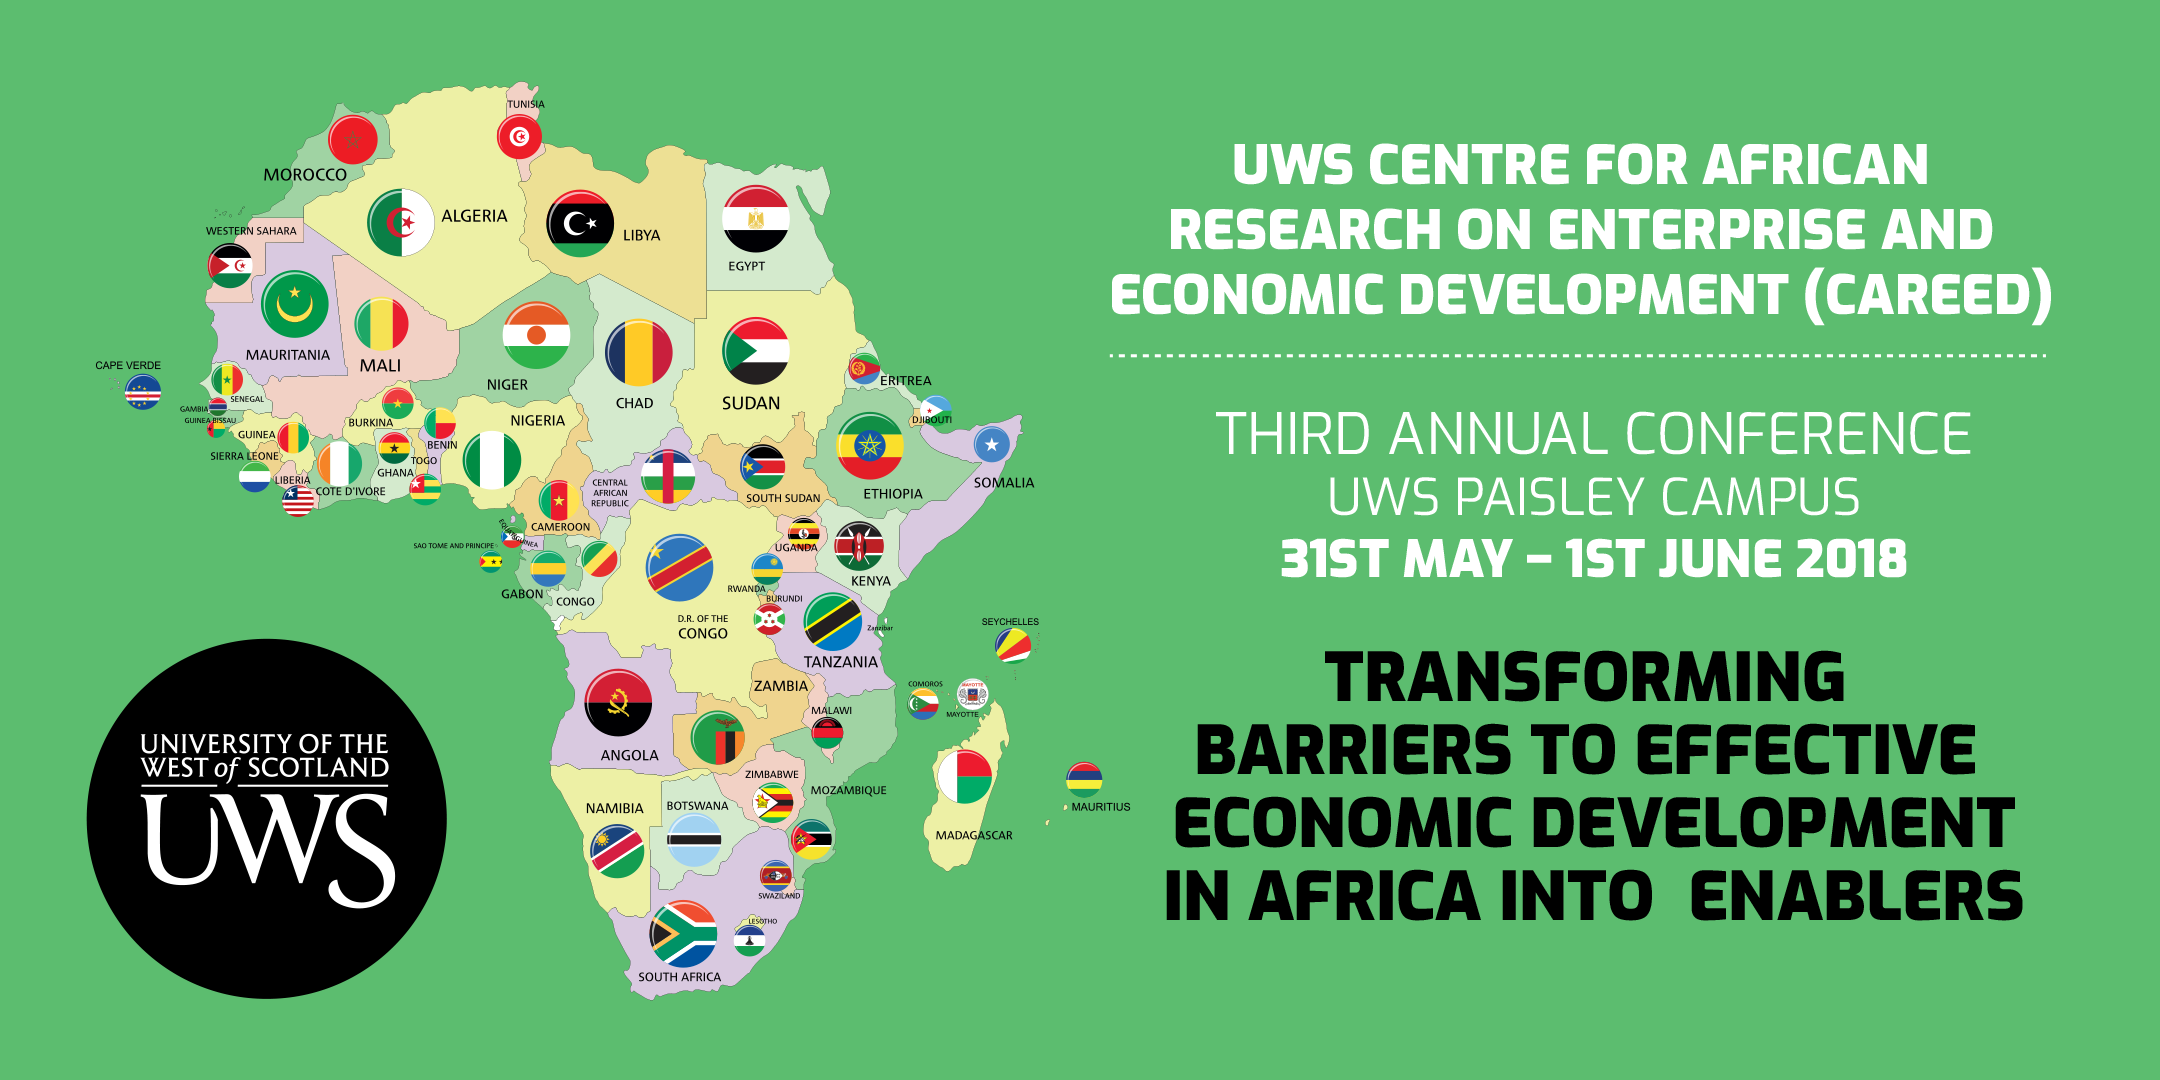 UWS Centre for African Research on Enterprise